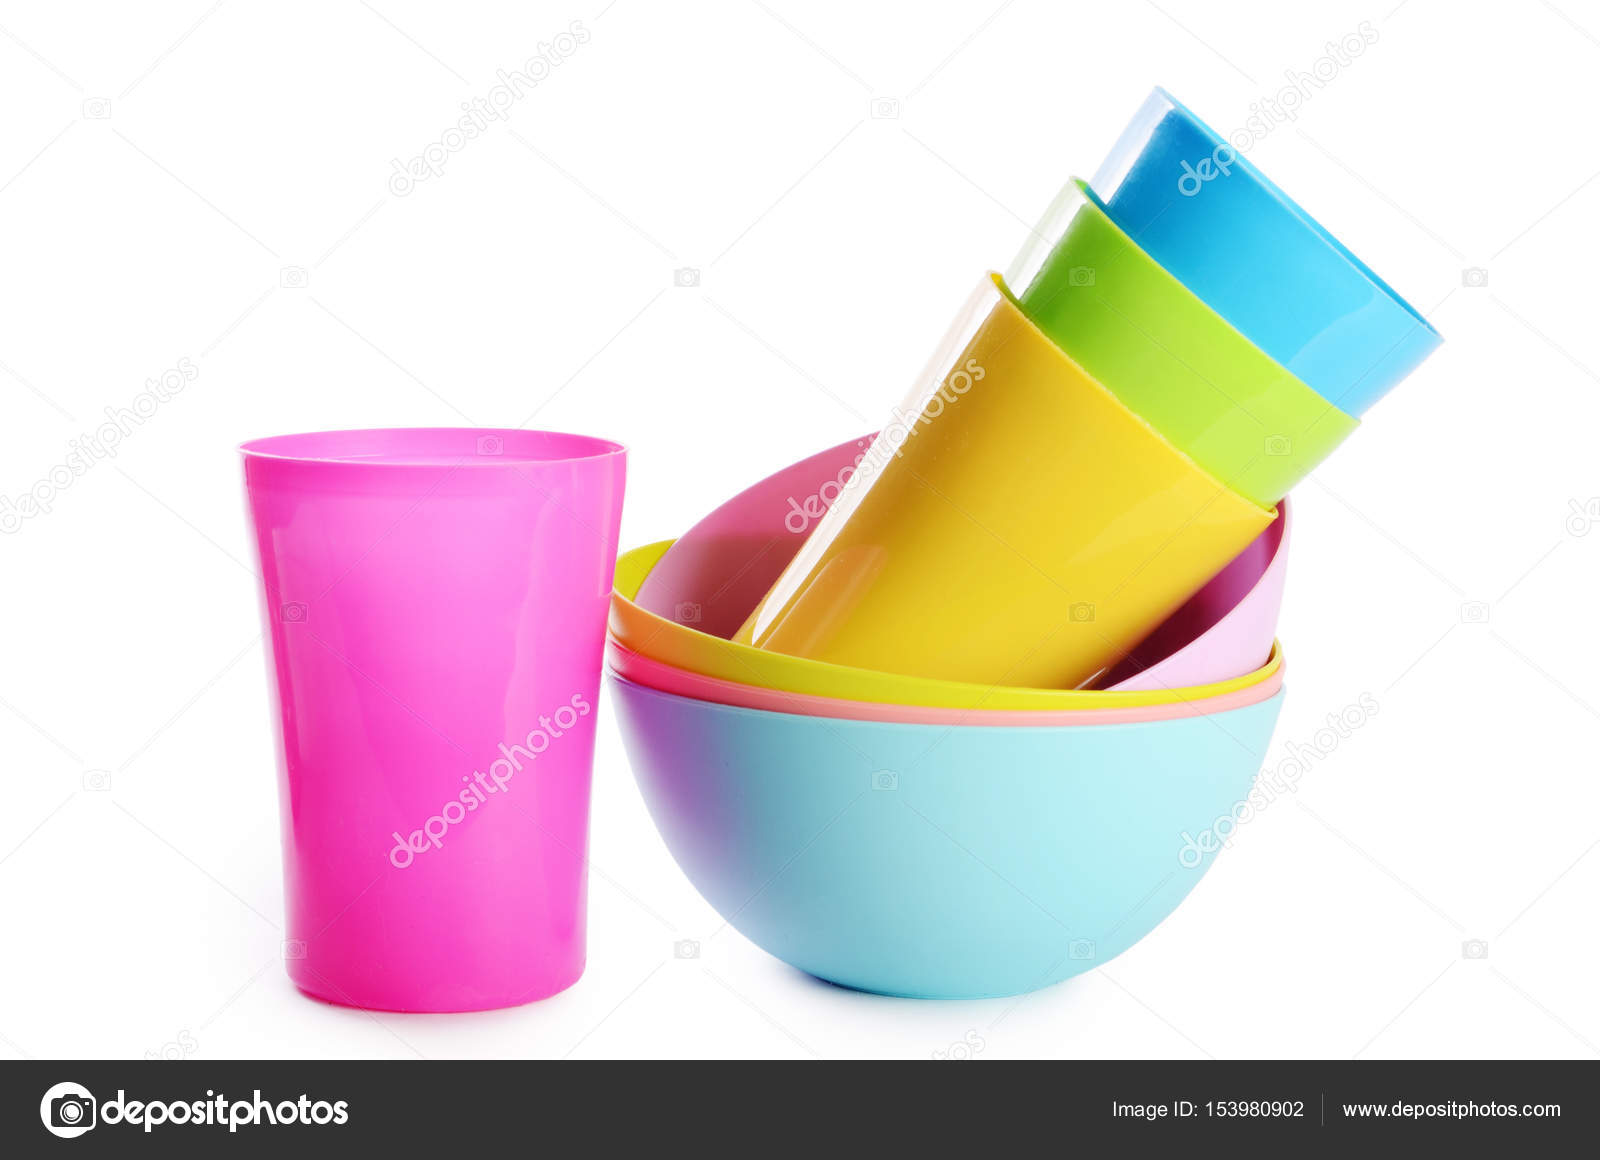 Colorful plastic cups and plates \u2014 Stock Photo  sc 1 st  Depositphotos & Colorful plastic cups and plates \u2014 Stock Photo © sveta-yaroslavl ...